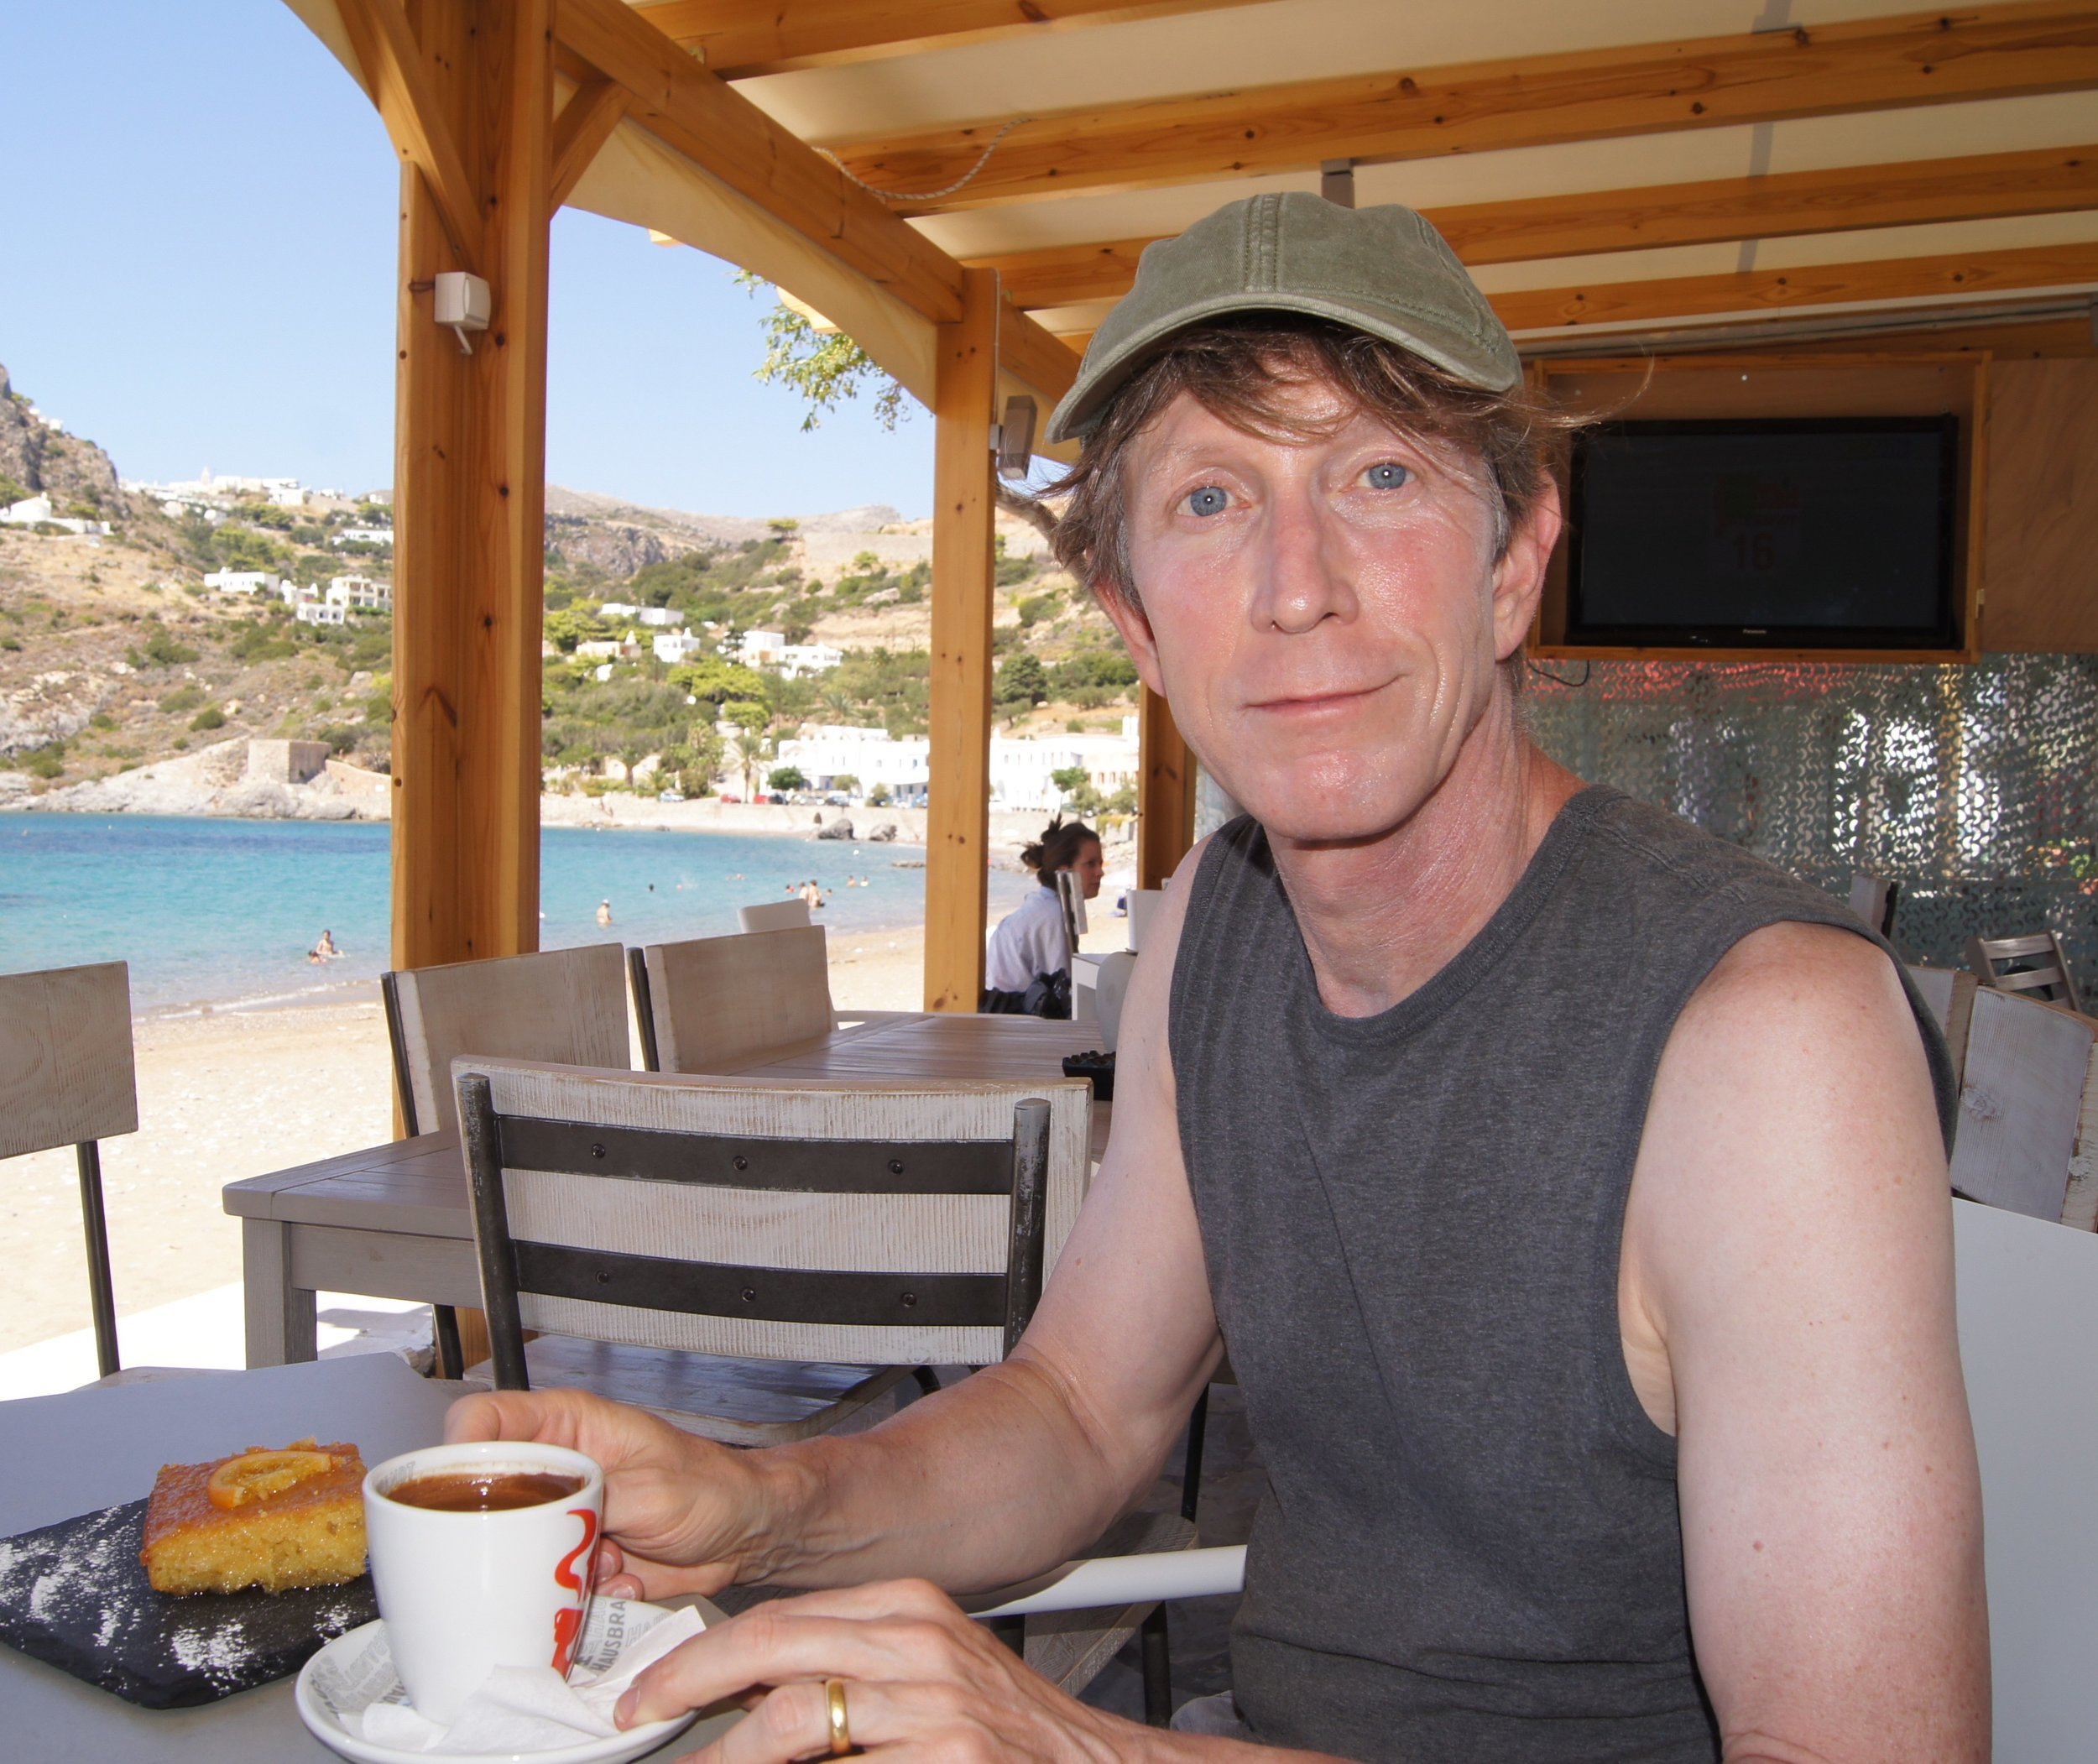 Though born and raised in Minnesota, Christopher Gauker is now Professor of Theoretical Philosophy at the University of Salzburg, Austria.  He is shown here in an uncommonly relaxed mood on a beach in Greece.  His books include   Words without Meaning  (MIT 2003)  and   Words and Images: An Essay on the Origin of Ideas  (Oxford 2011) .